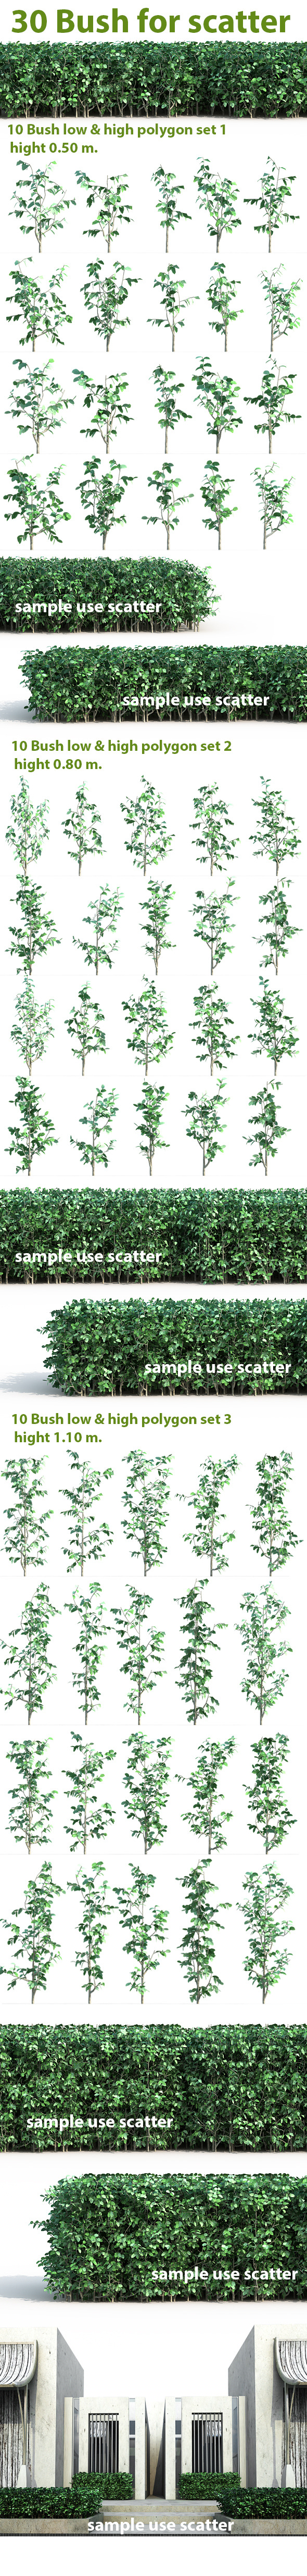 3DOcean 30 Bush For Scatter 10465338